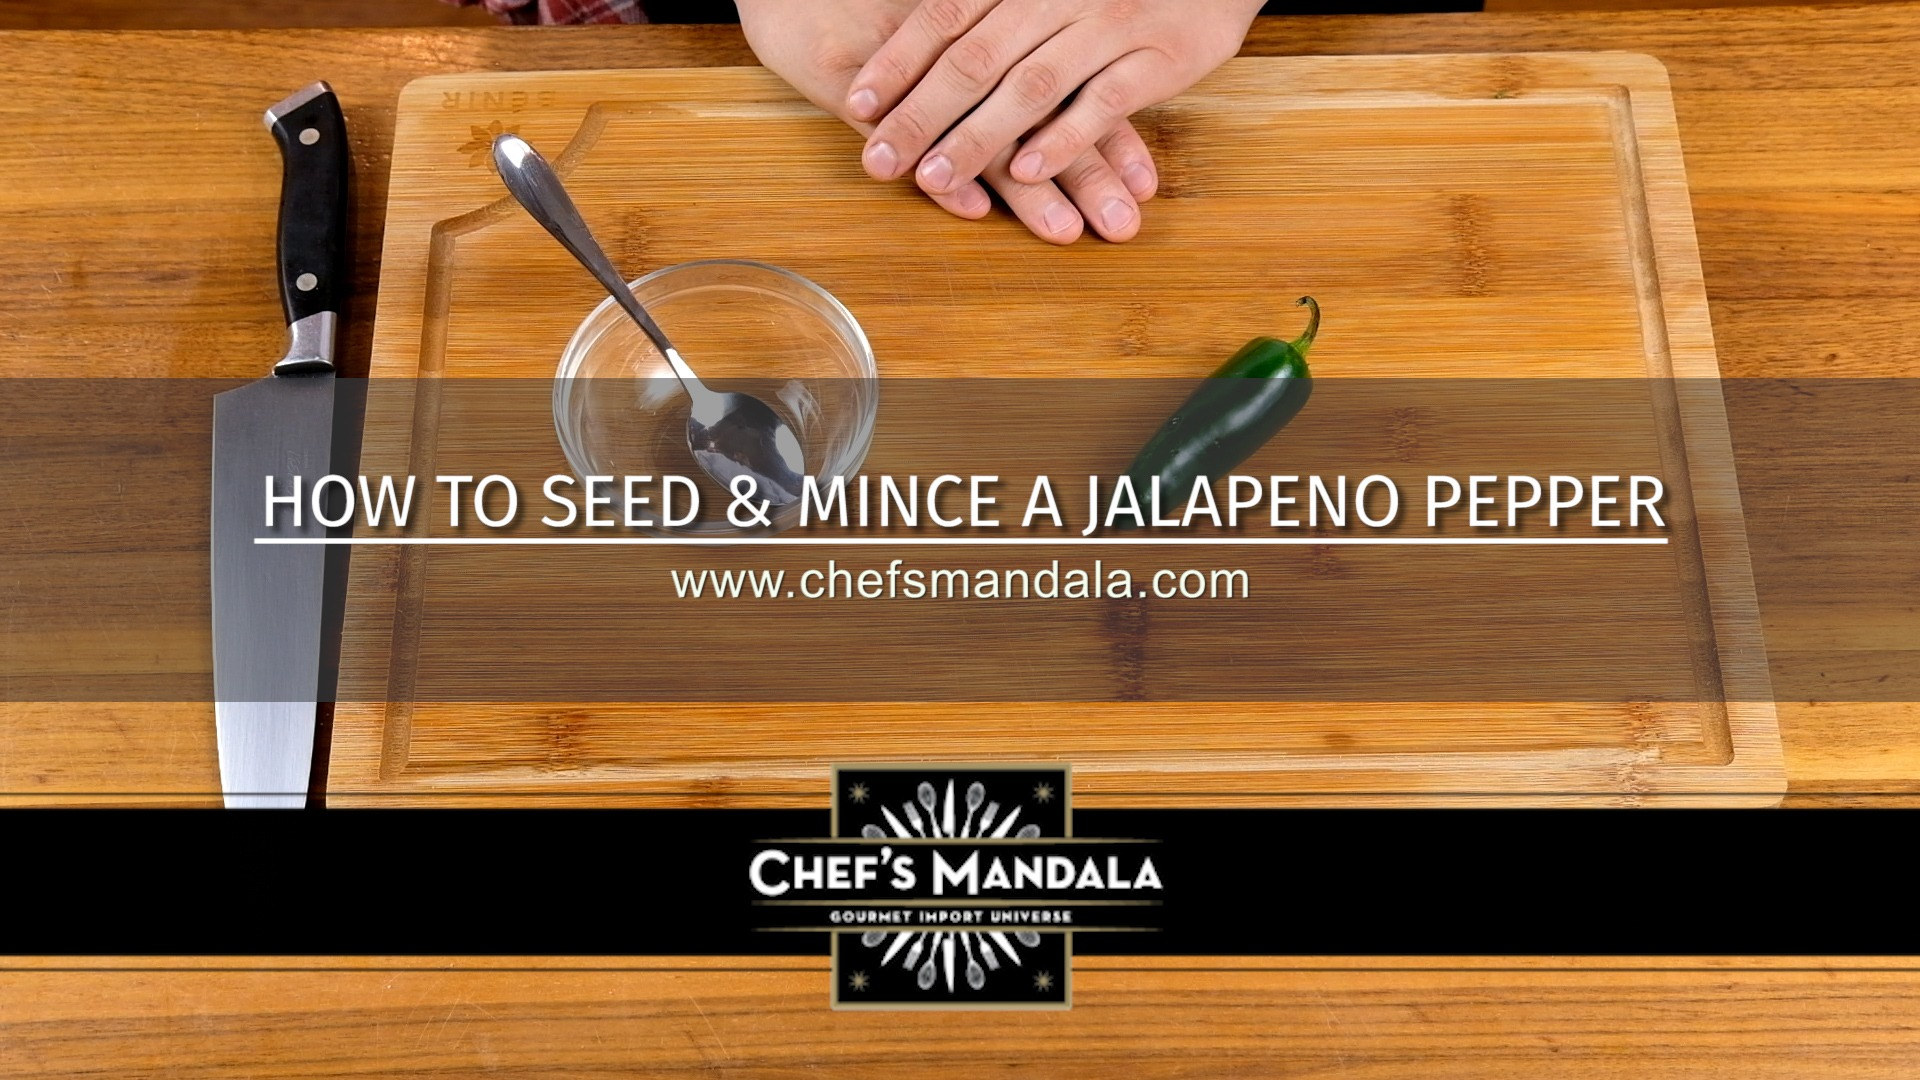 HOW TO SEED & MINCE A JALAPENO PEPPER